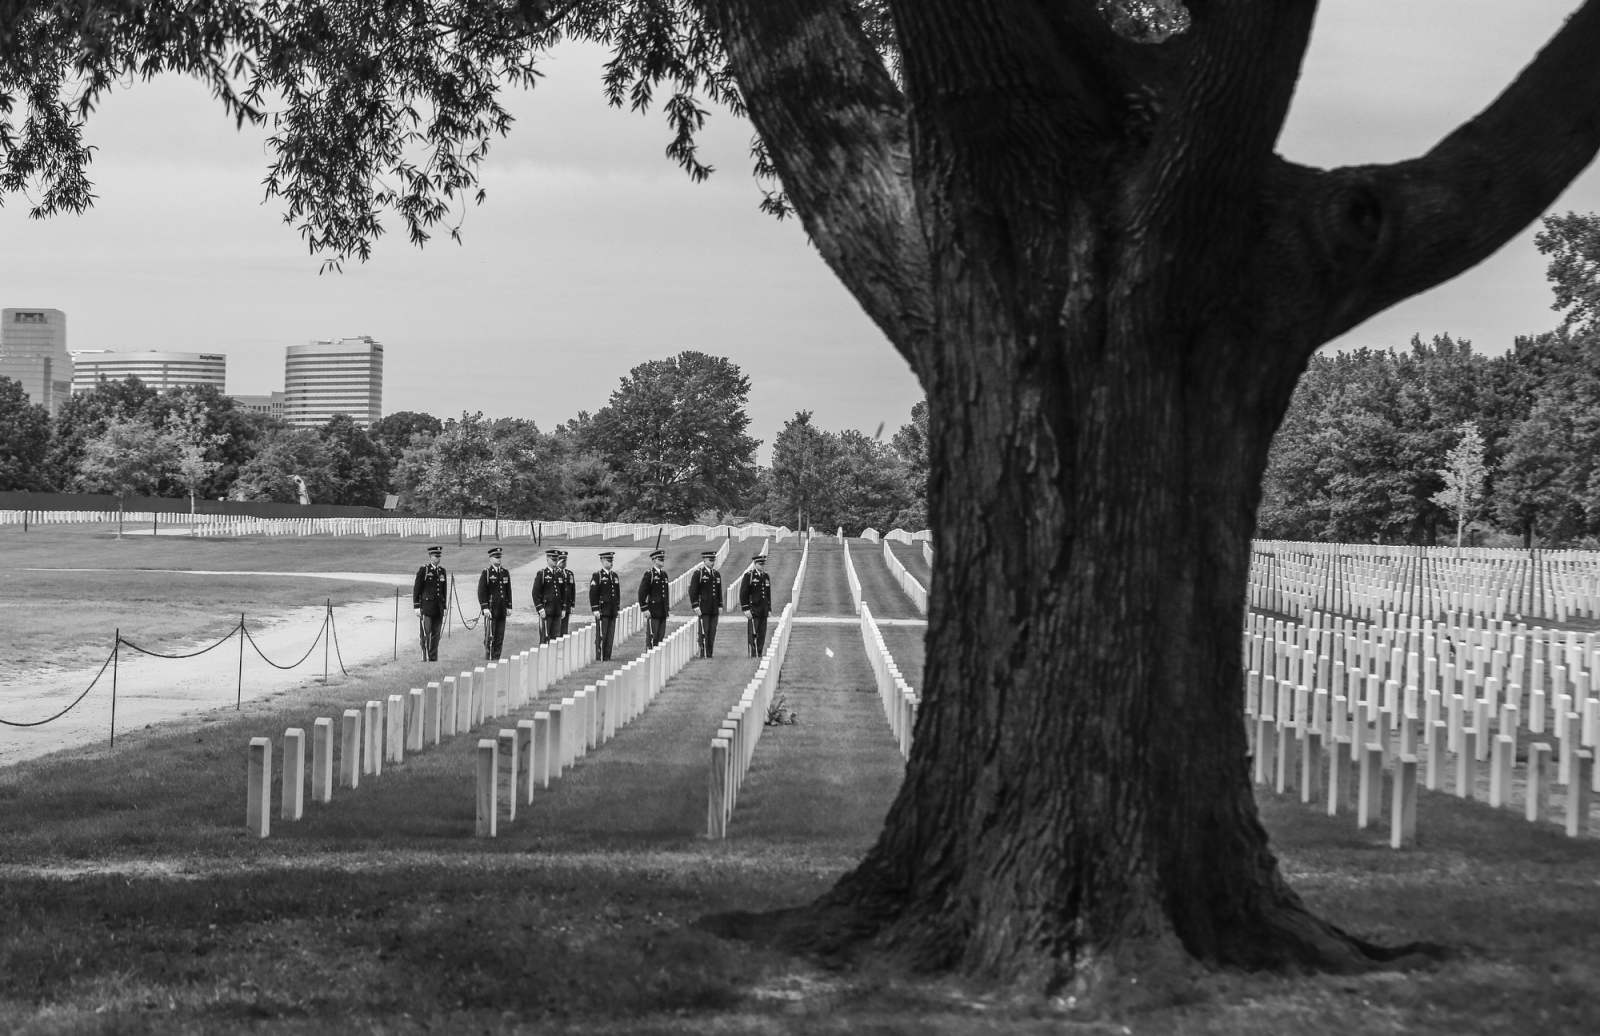 Photography image - Bert Chole's funeral at Arlington National Cemetery. September 22nd 2017 (Photo by Jeremy Hogan)